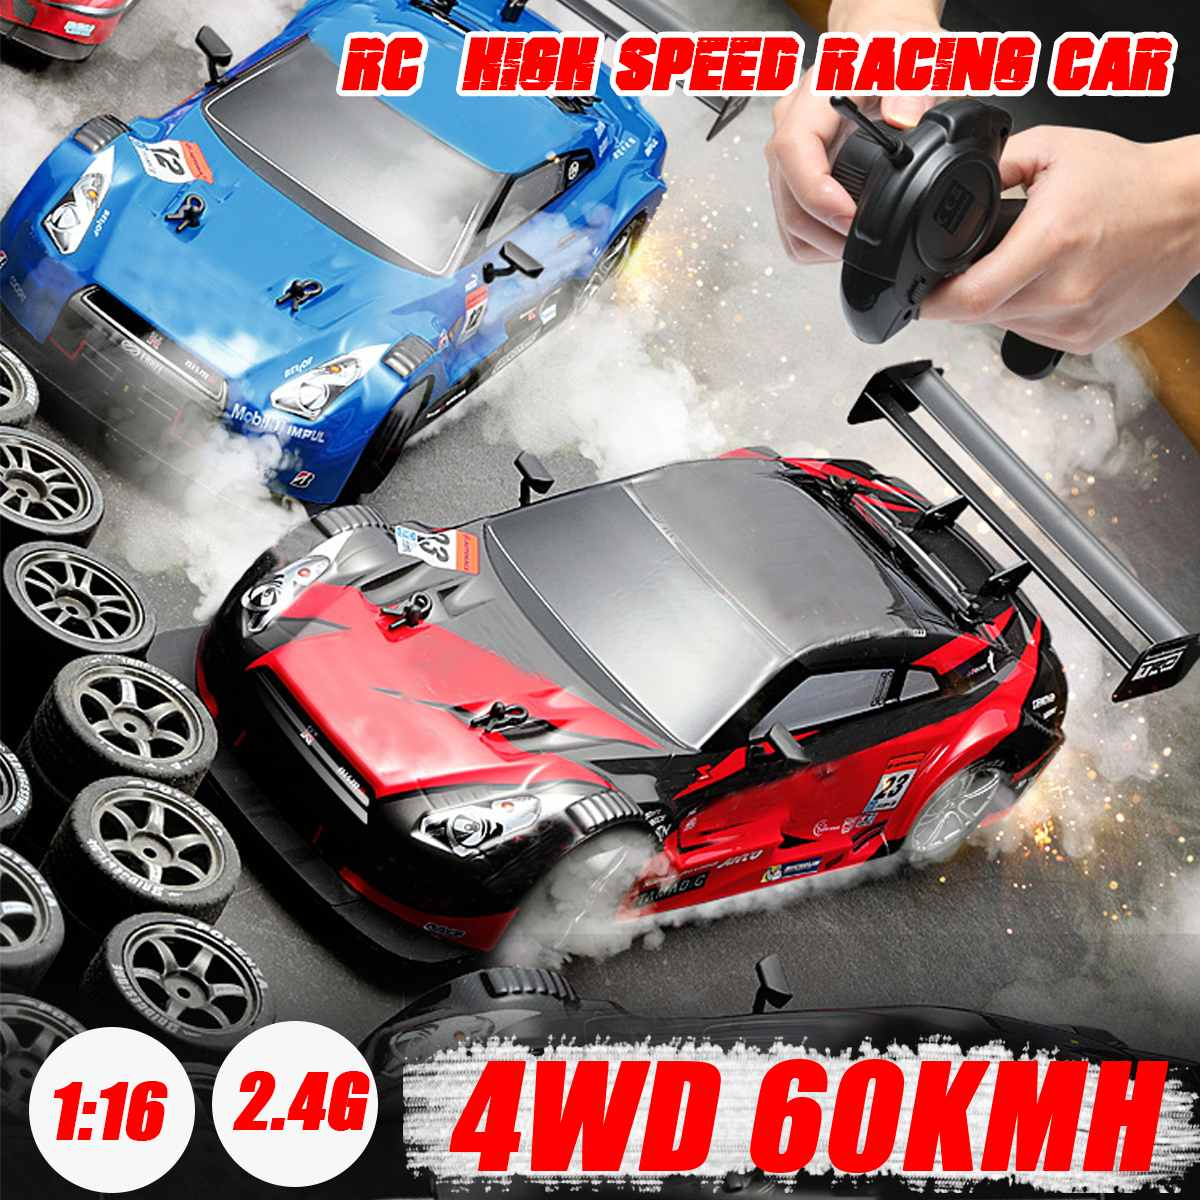 1/16 RC <font><b>Car</b></font> 2.4G Off Road 4WD Drift Racing <font><b>Car</b></font> Championship Vehicle Remote Control <font><b>Electronic</b></font> <font><b>Kids</b></font> Hobby Toys image